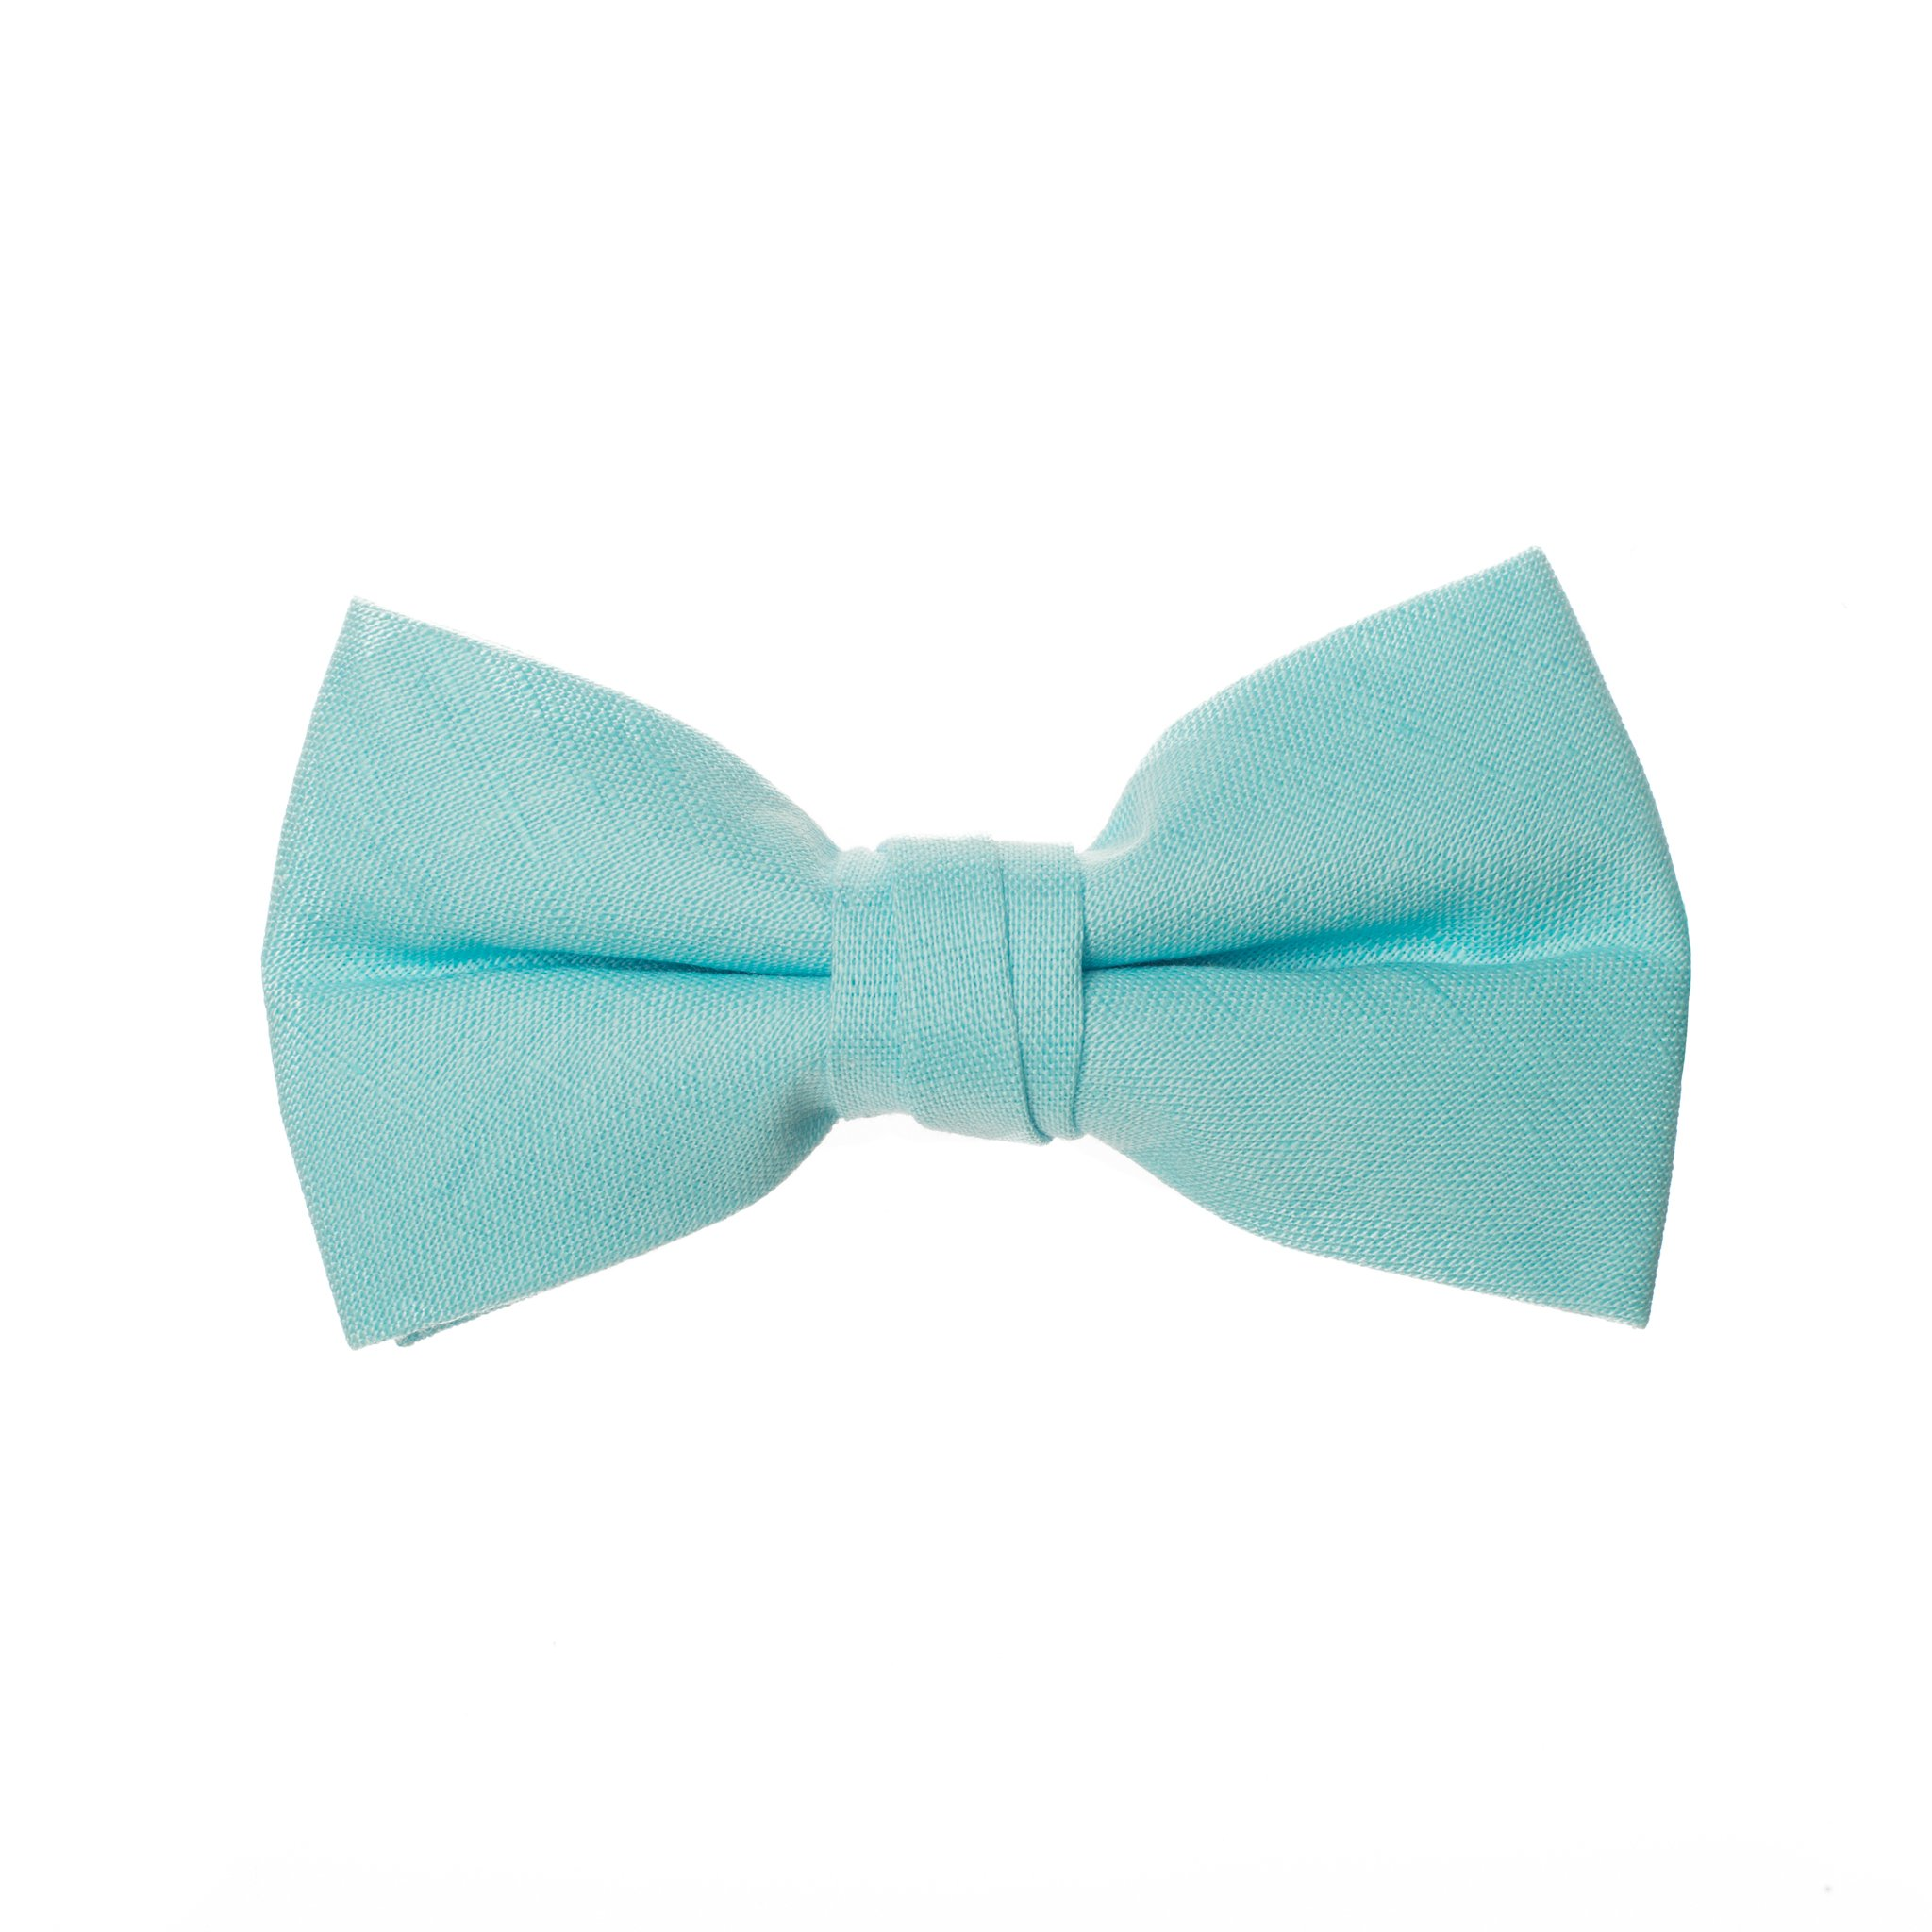 Born to Love - Boys Kids Adjustable Bowtie Easter Outfit Party Dress up 4 Inches (teal linen)